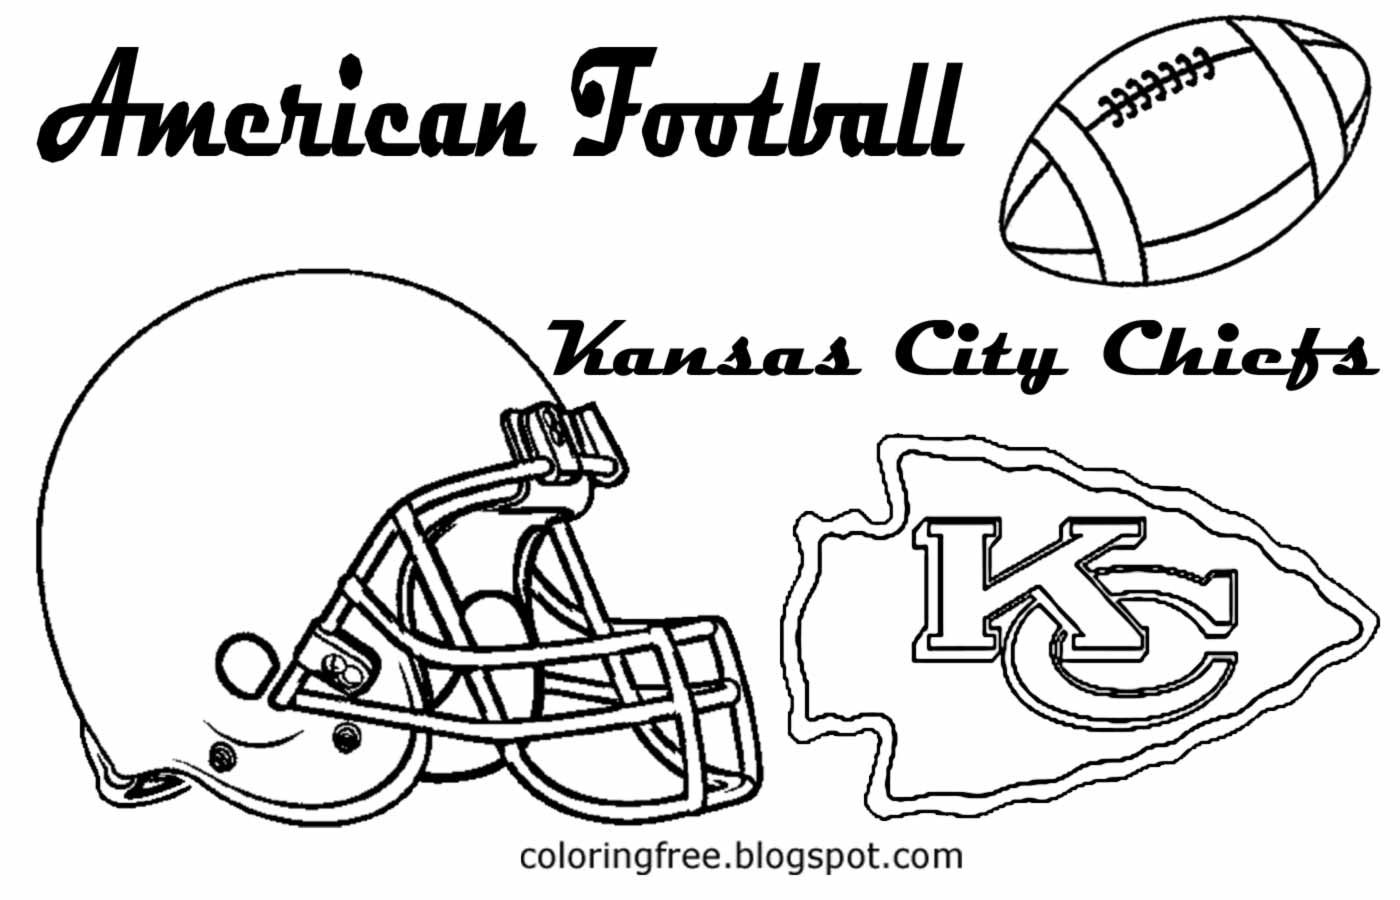 kc chiefs coloring pages - photo#7